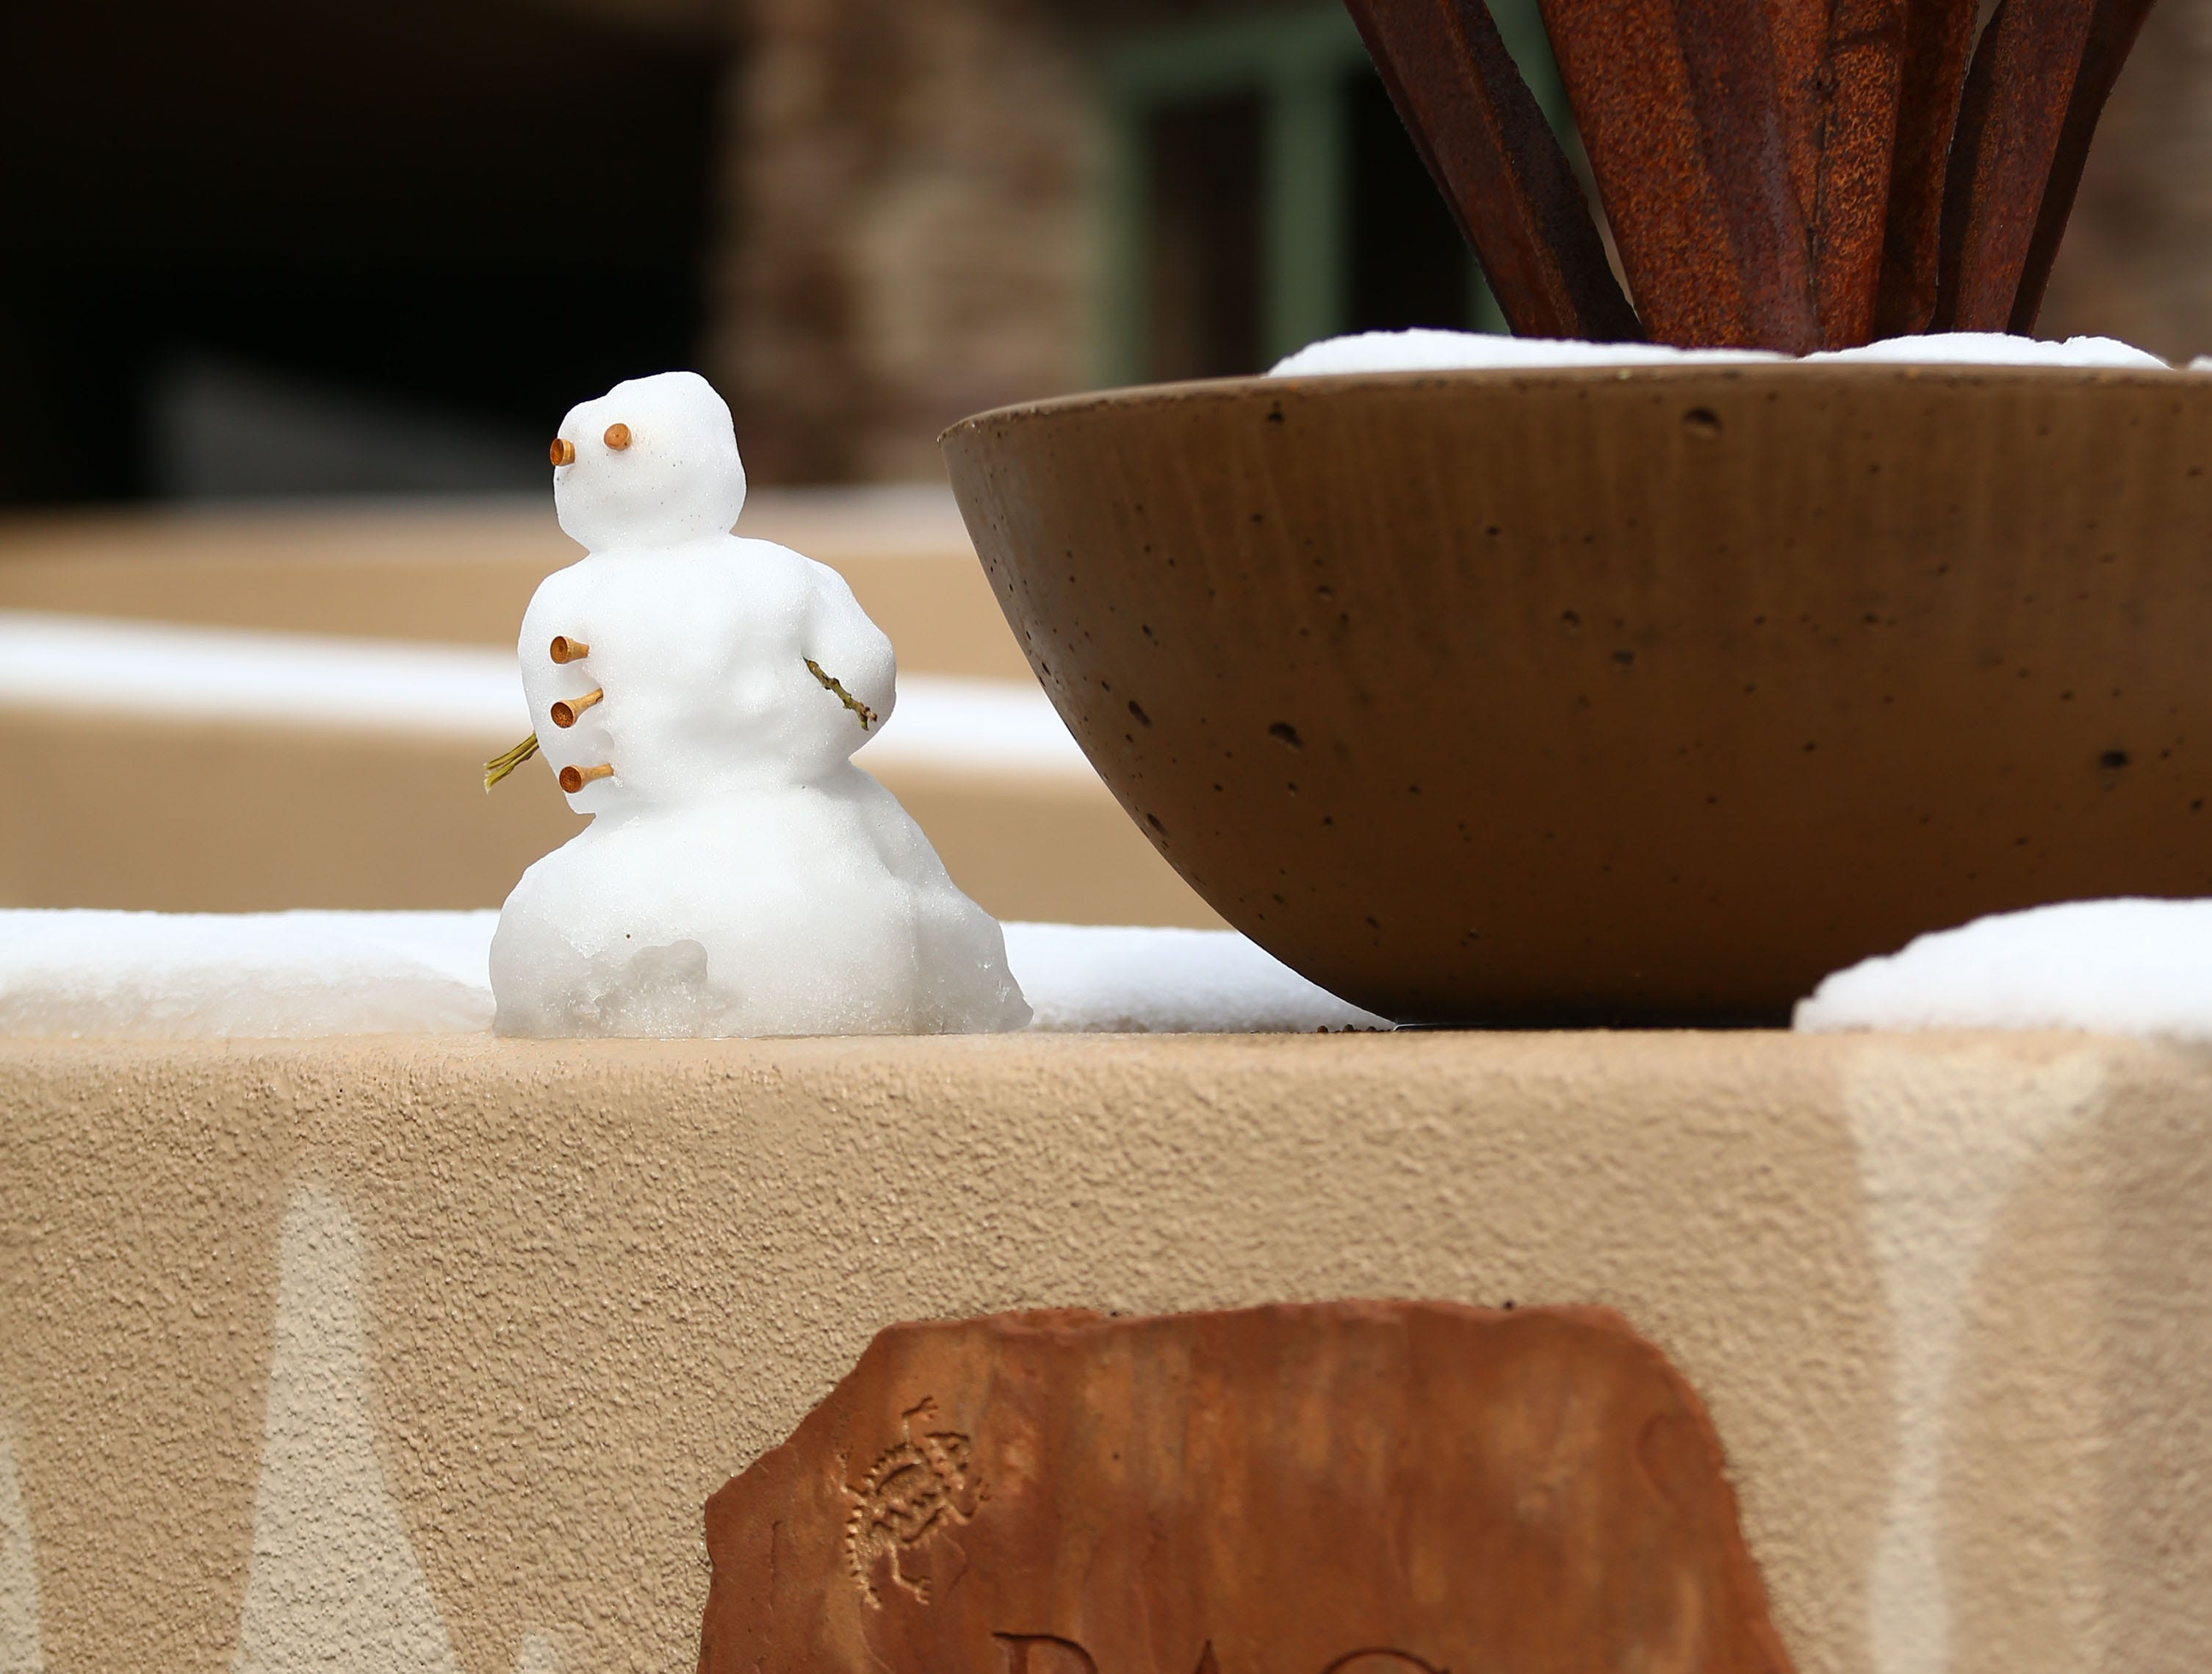 A snowman made with golf tees sits at Troon North Golf Club on Feb. 22, 2019, in Scottsdale.